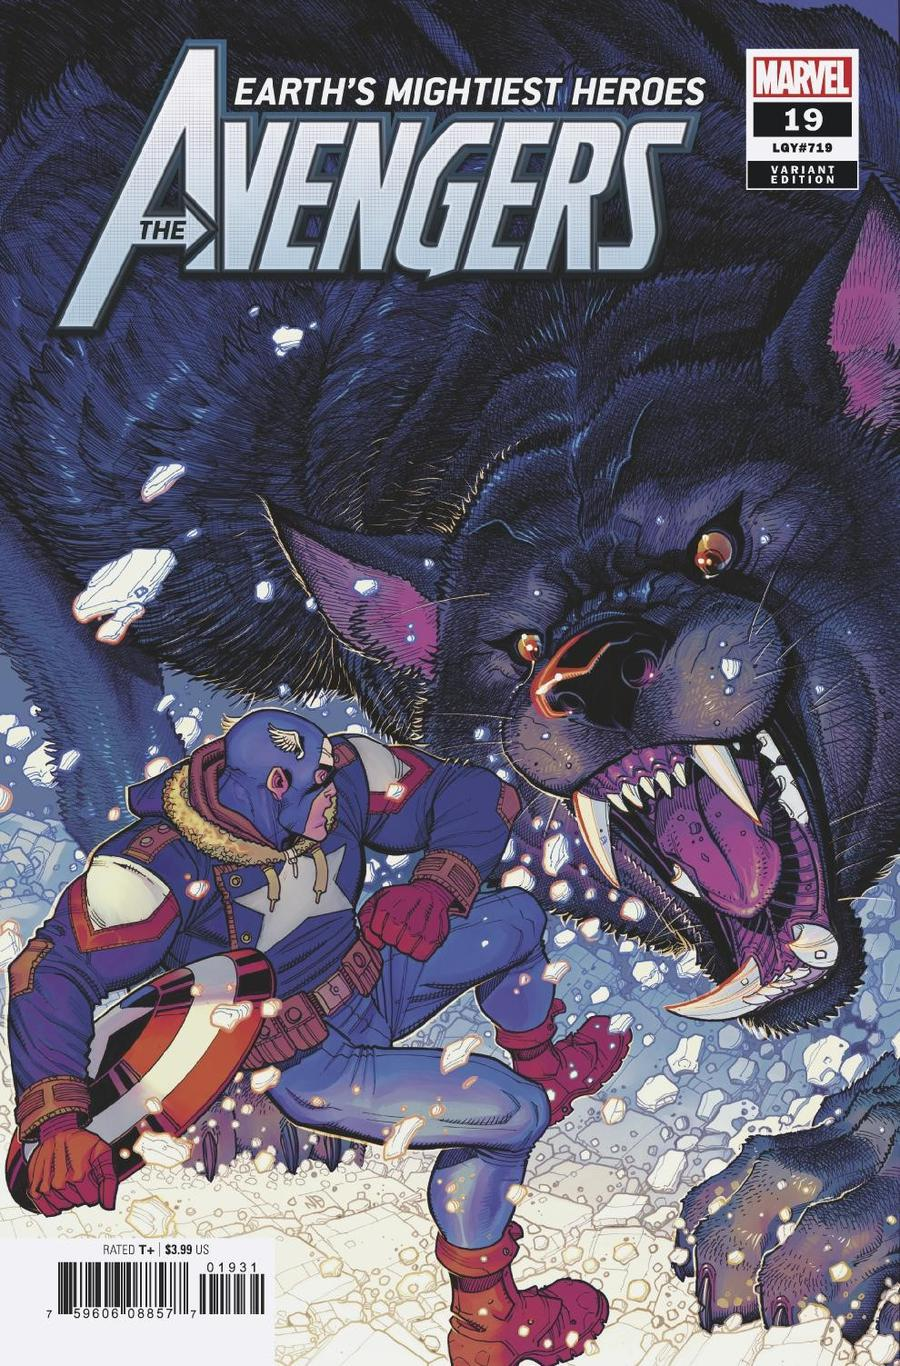 Avengers Vol 7 #19 Cover C Incentive Nick Bradshaw Variant Cover (War Of The Realms Tie-In)